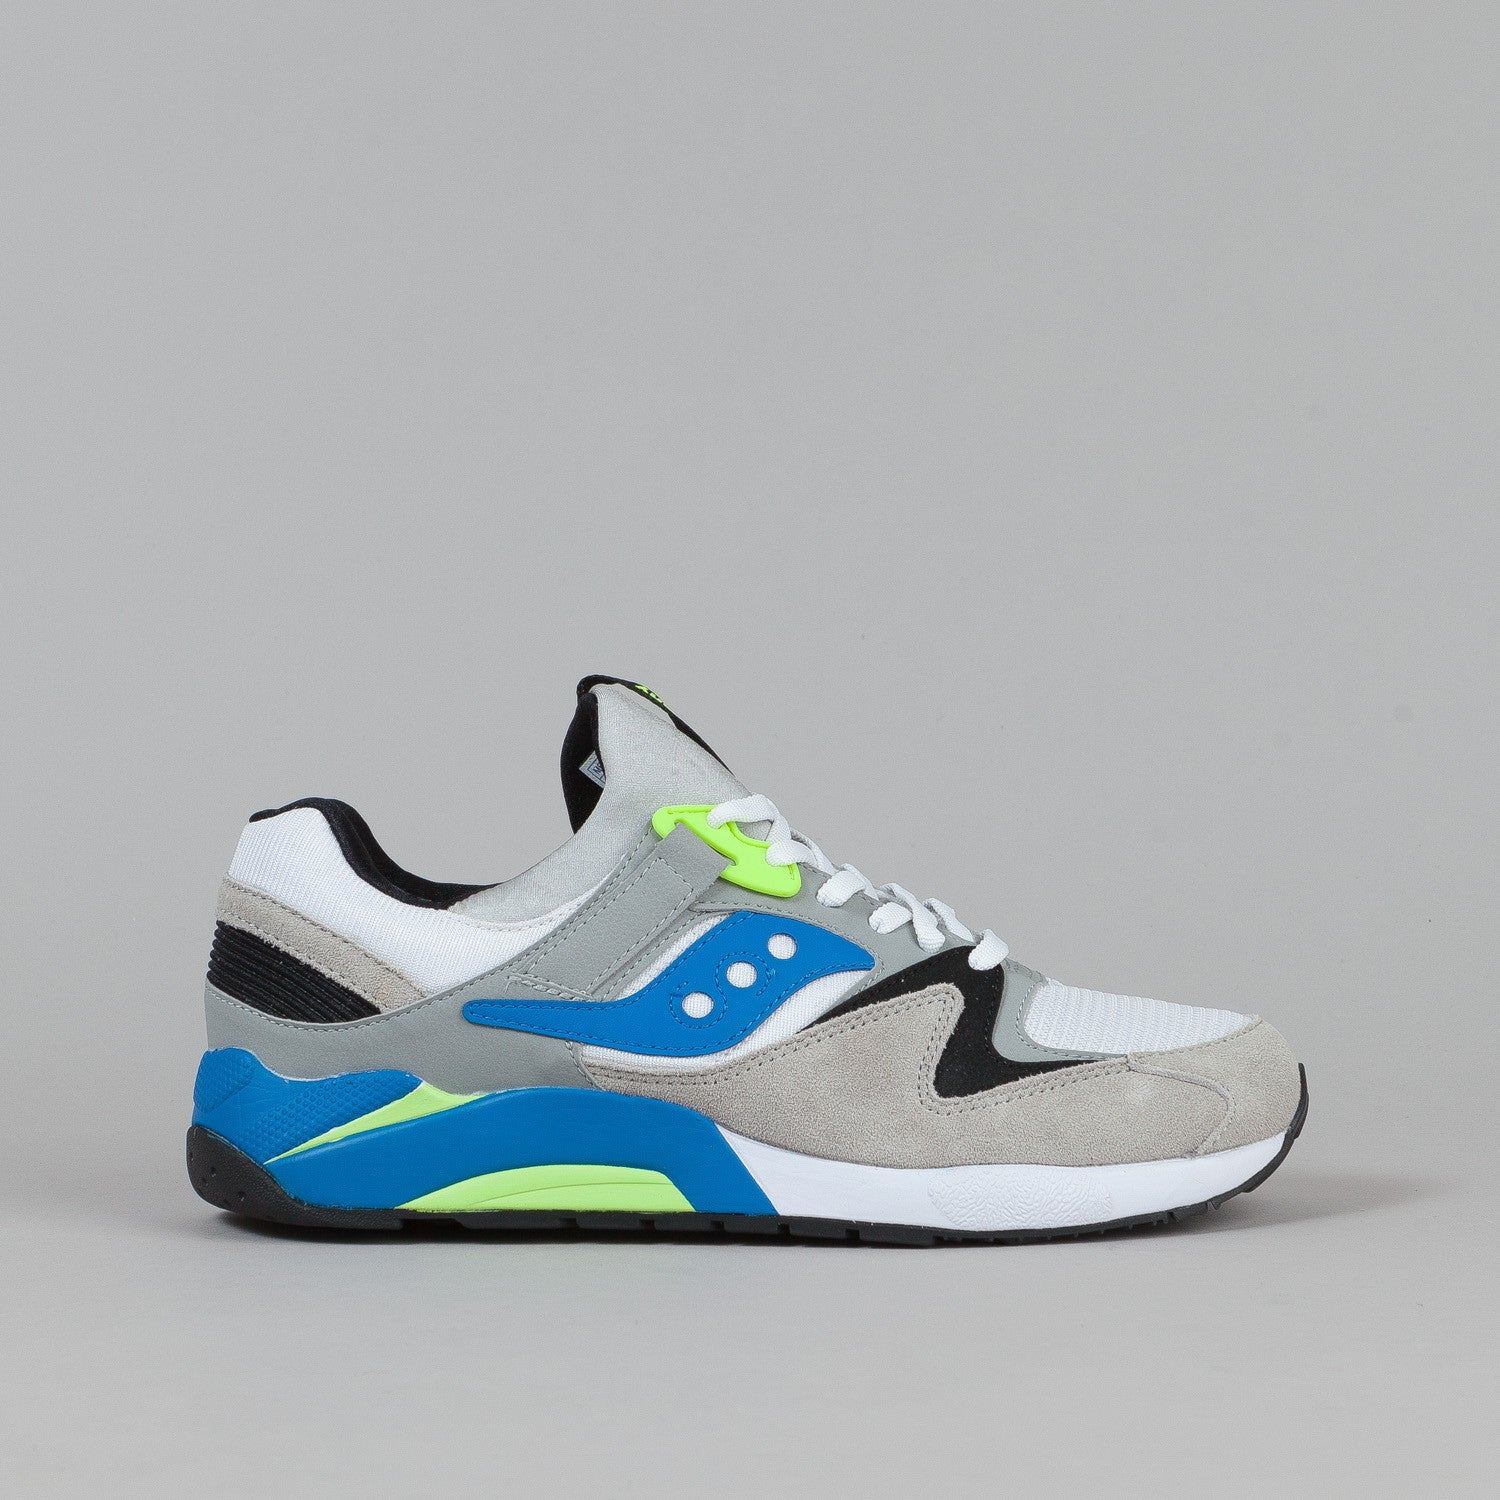 Saucony Grid 9000 Shoes